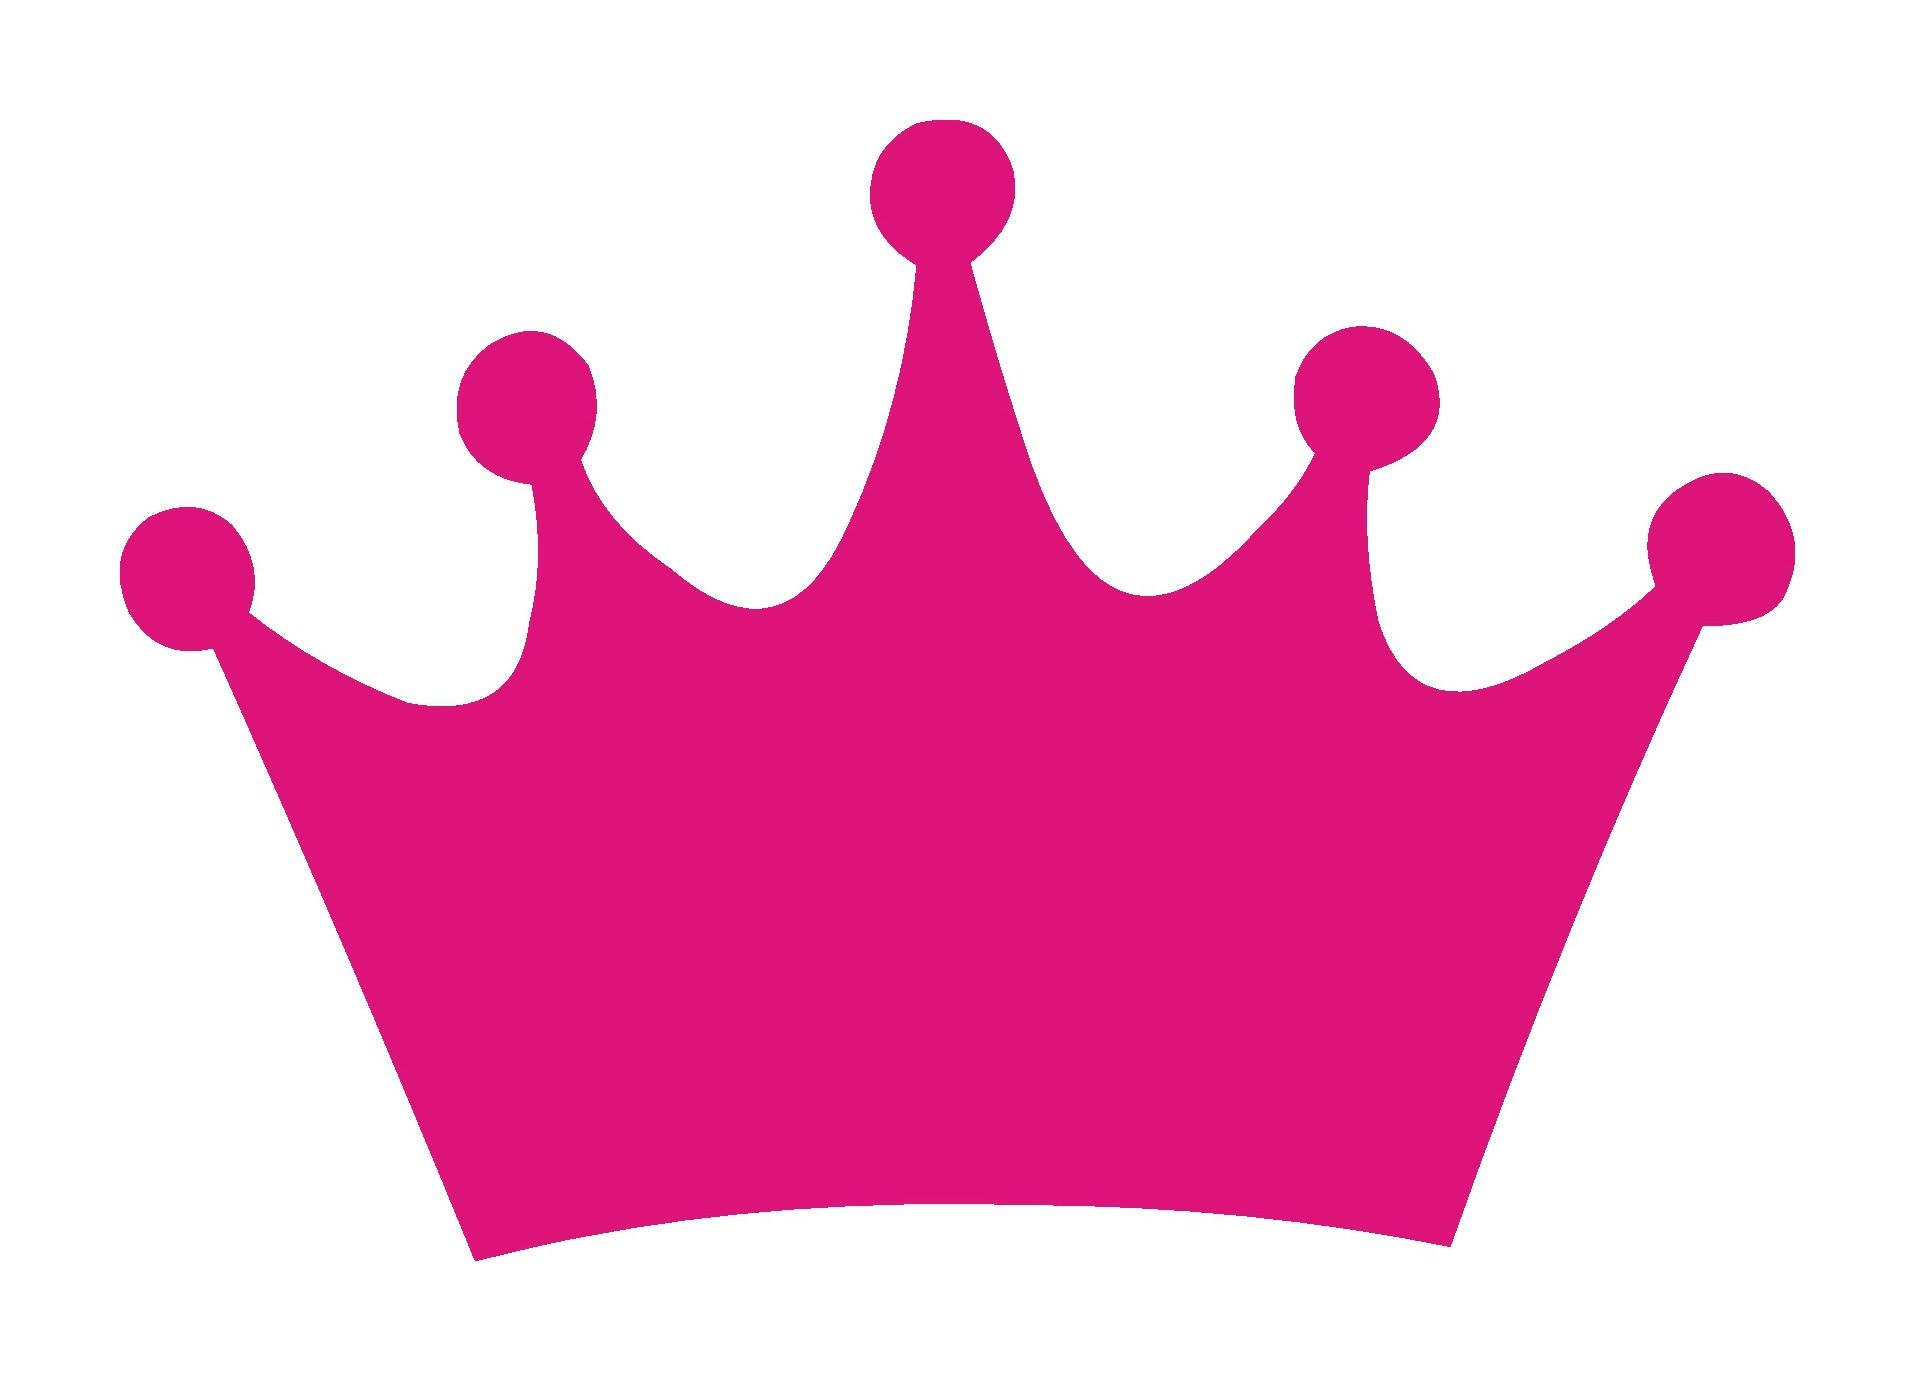 Crown clipart princess crown. Silhouette barbie at getdrawings